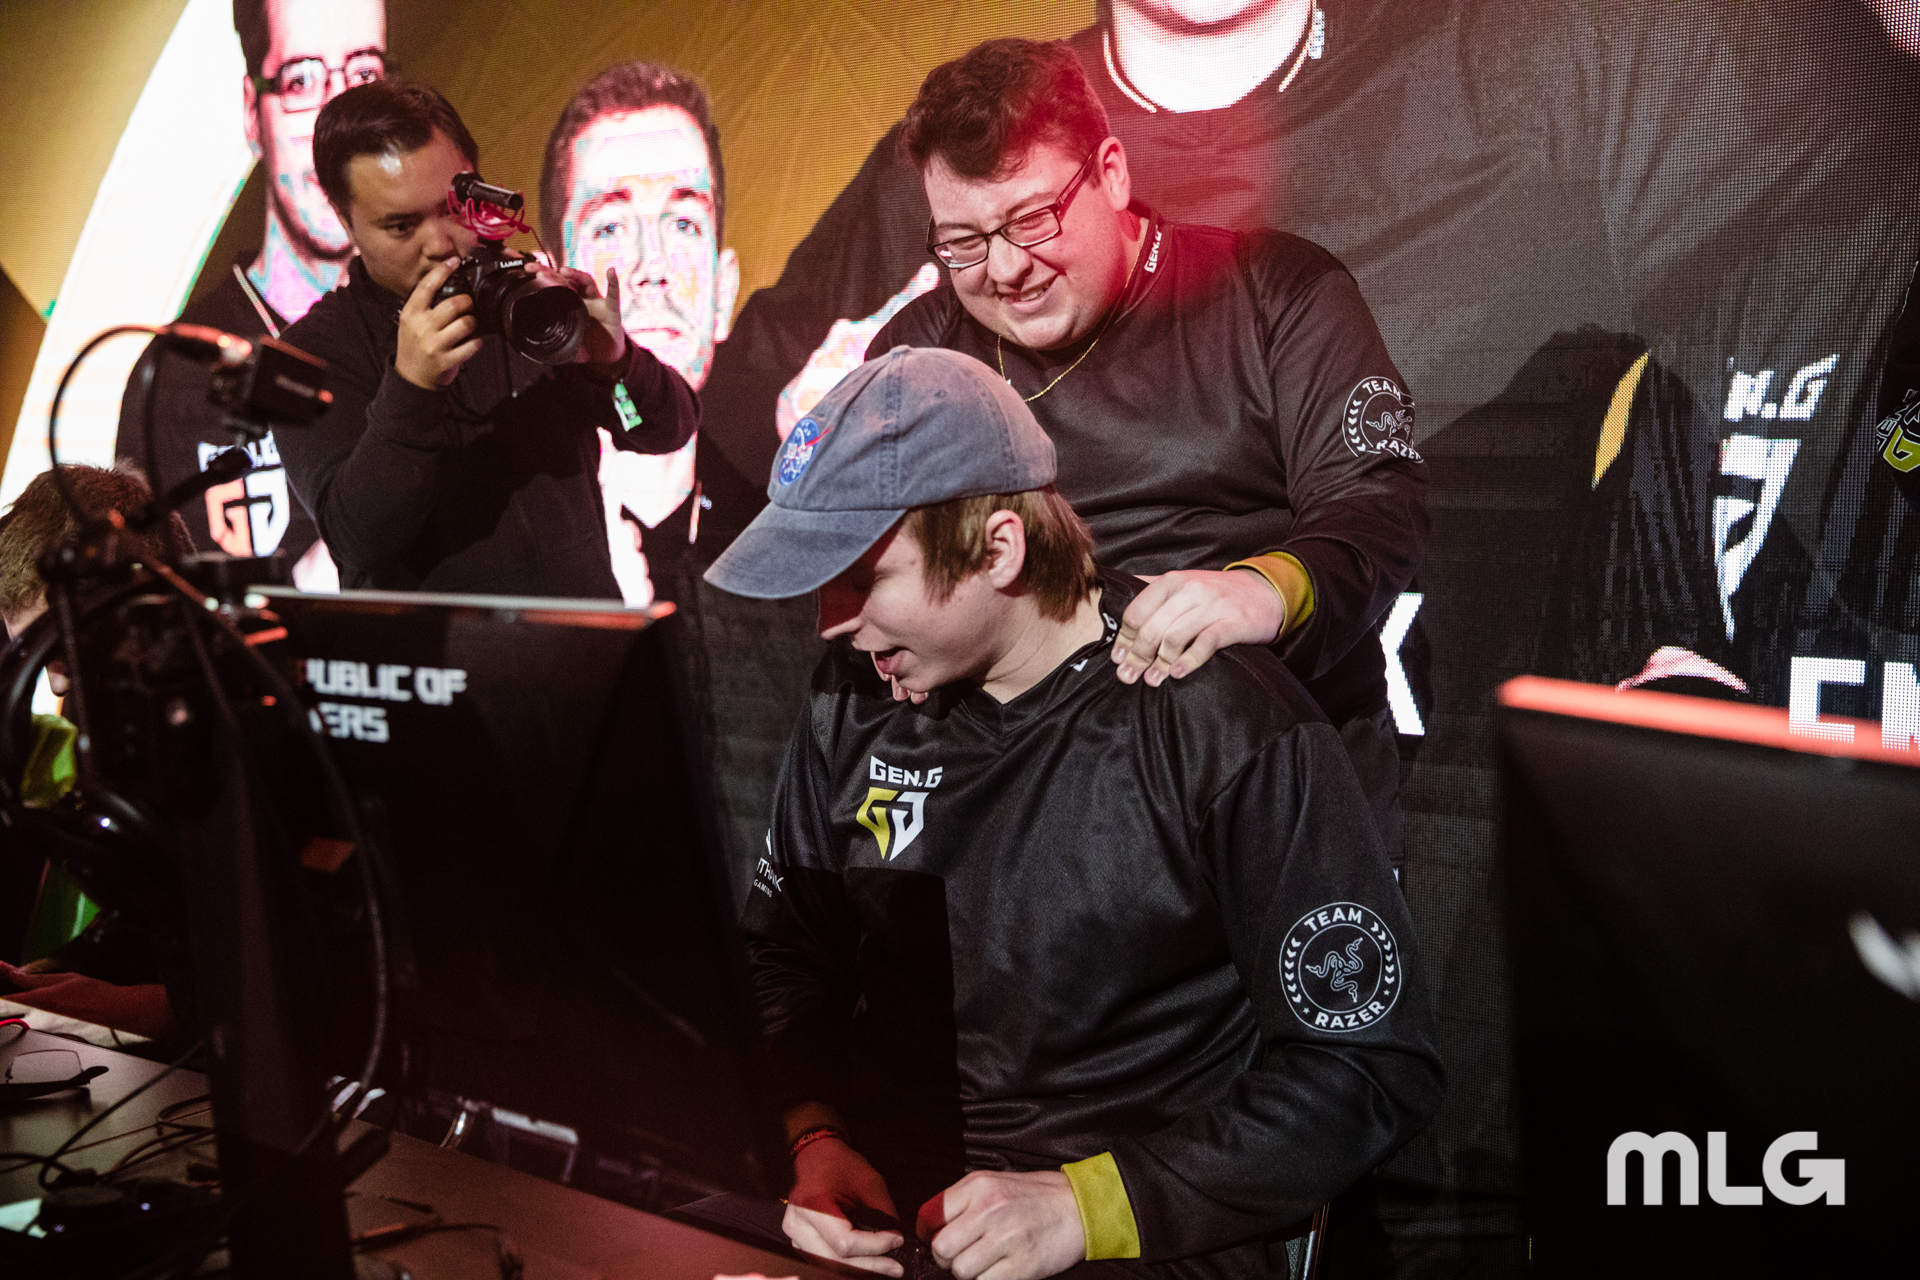 Five Things We Learned at CWL Anaheim